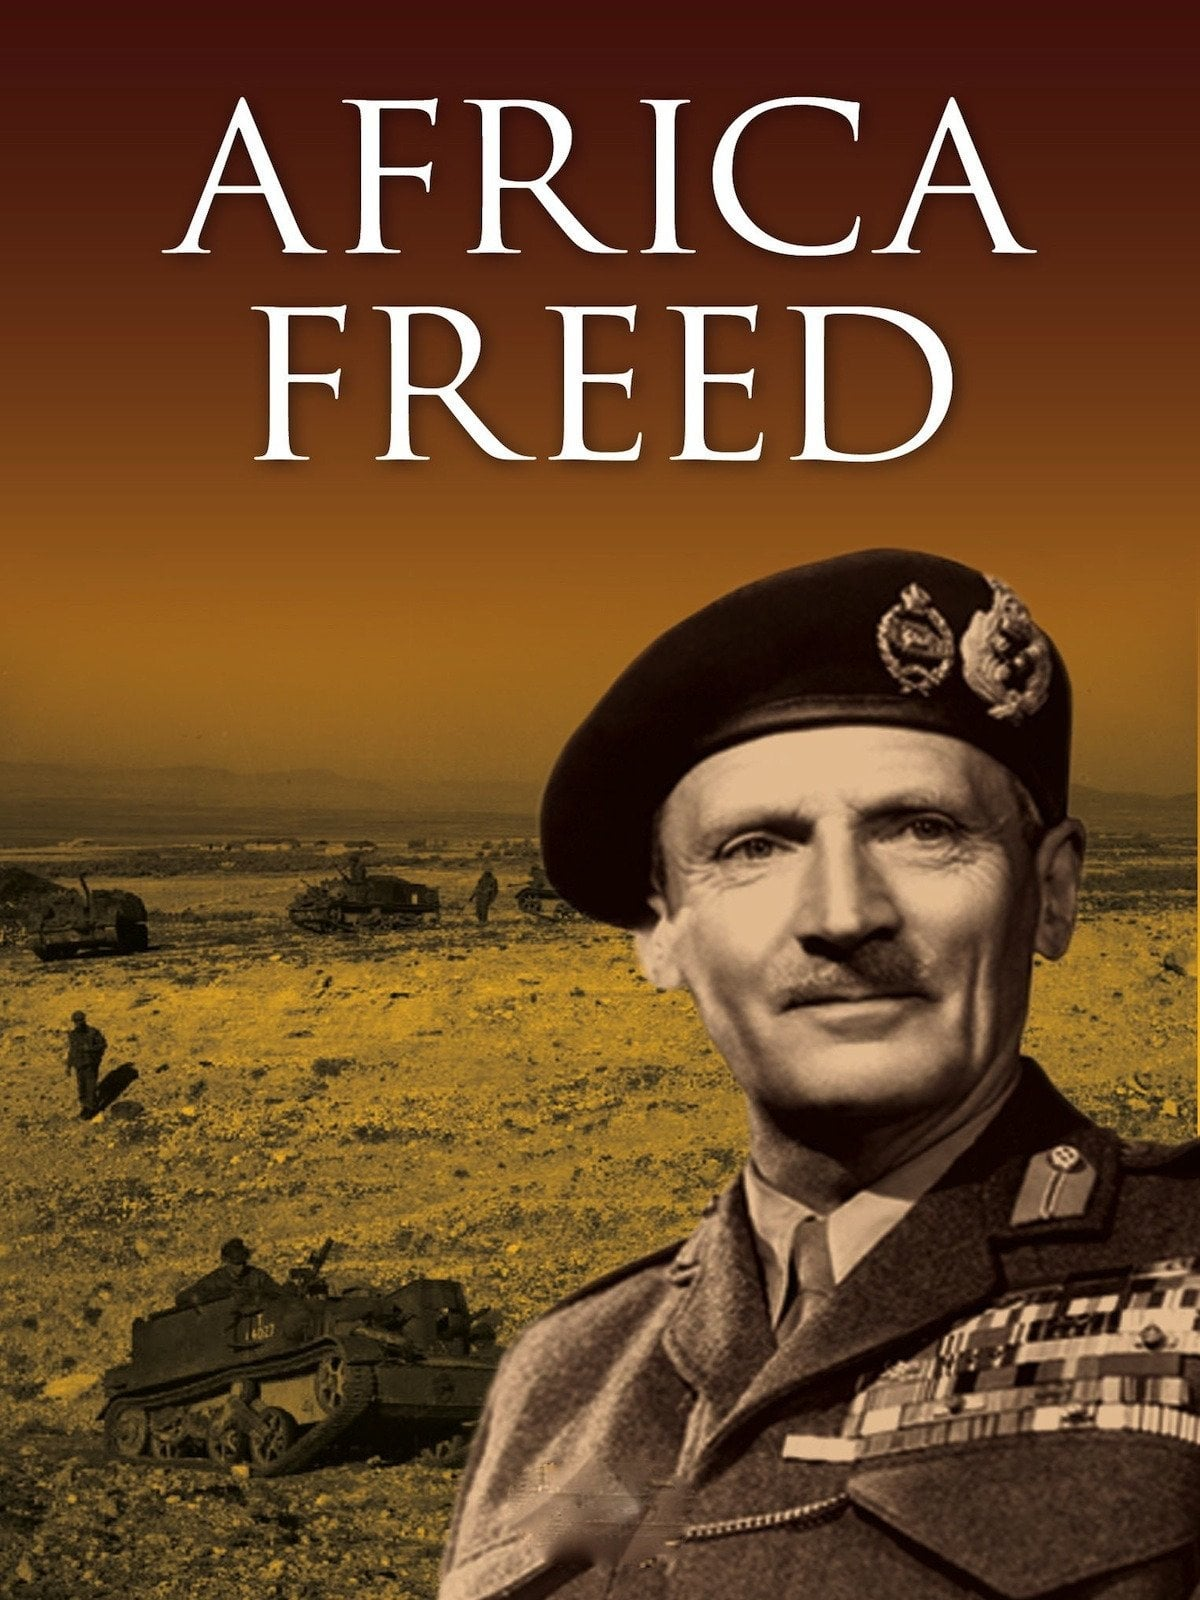 Africa Freed on FREECABLE TV